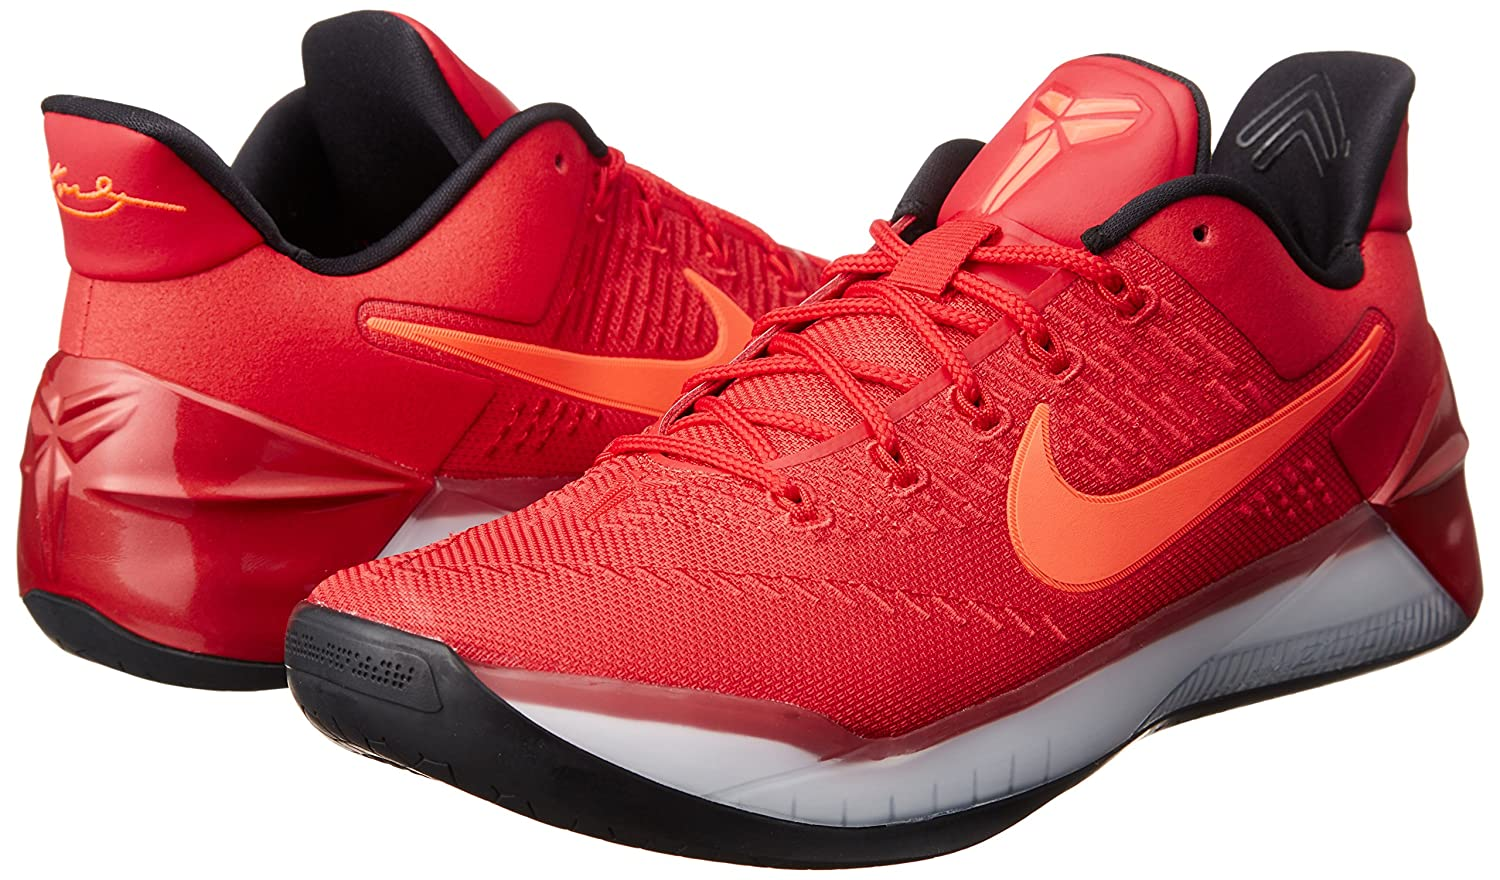 check out 41683 d8327 Nike Mens Kobe AD University Red Basketball Shoes 852425-608, 10 D(M) US   Buy Online at Low Prices in India - Amazon.in